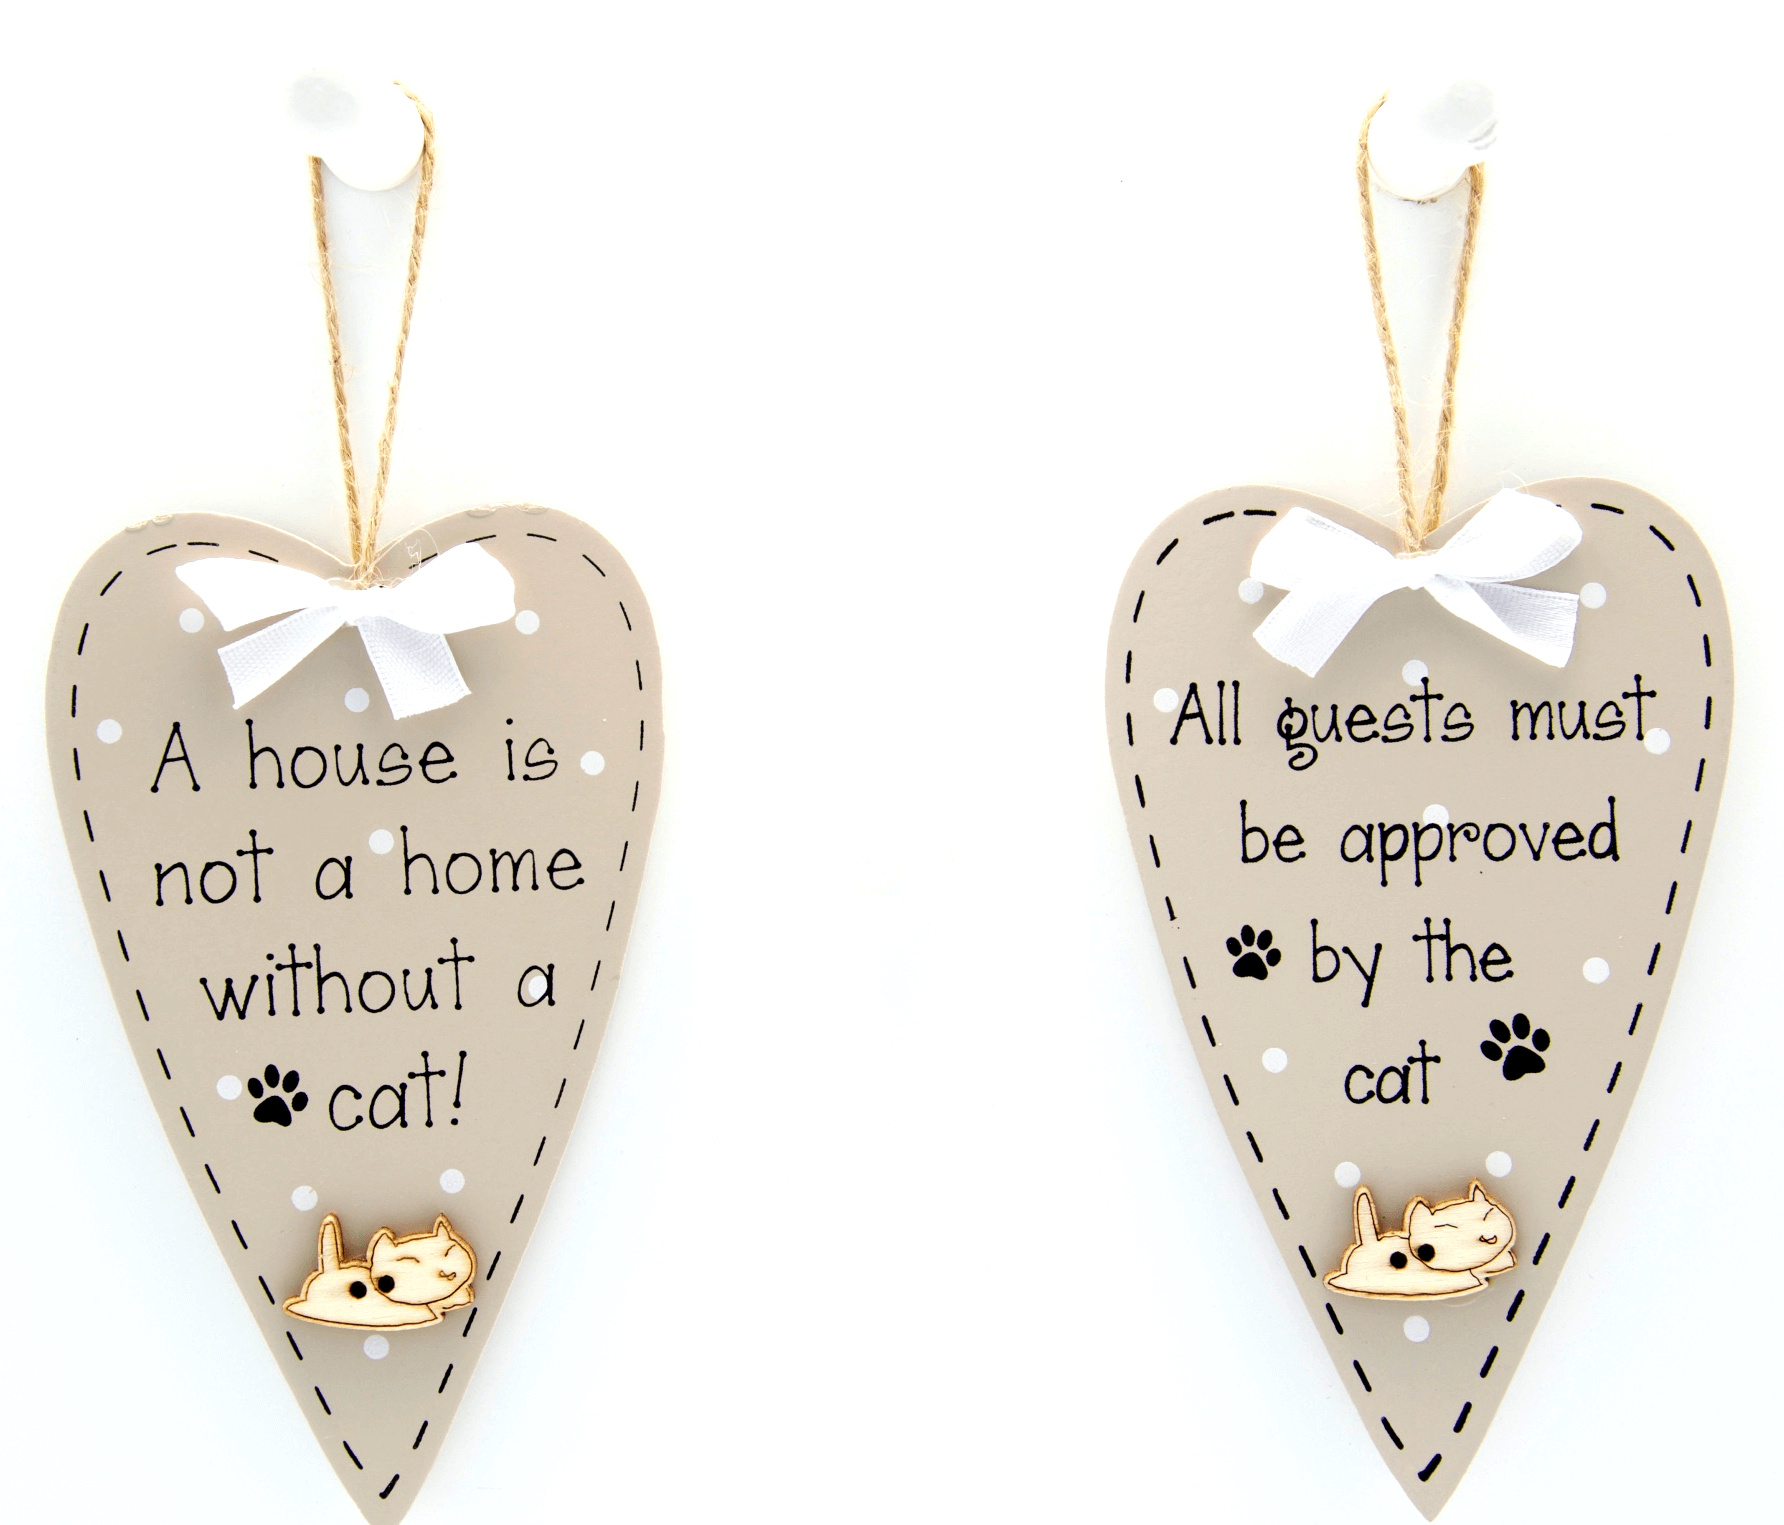 Set of 2 Hanging Cat Heart Plaques